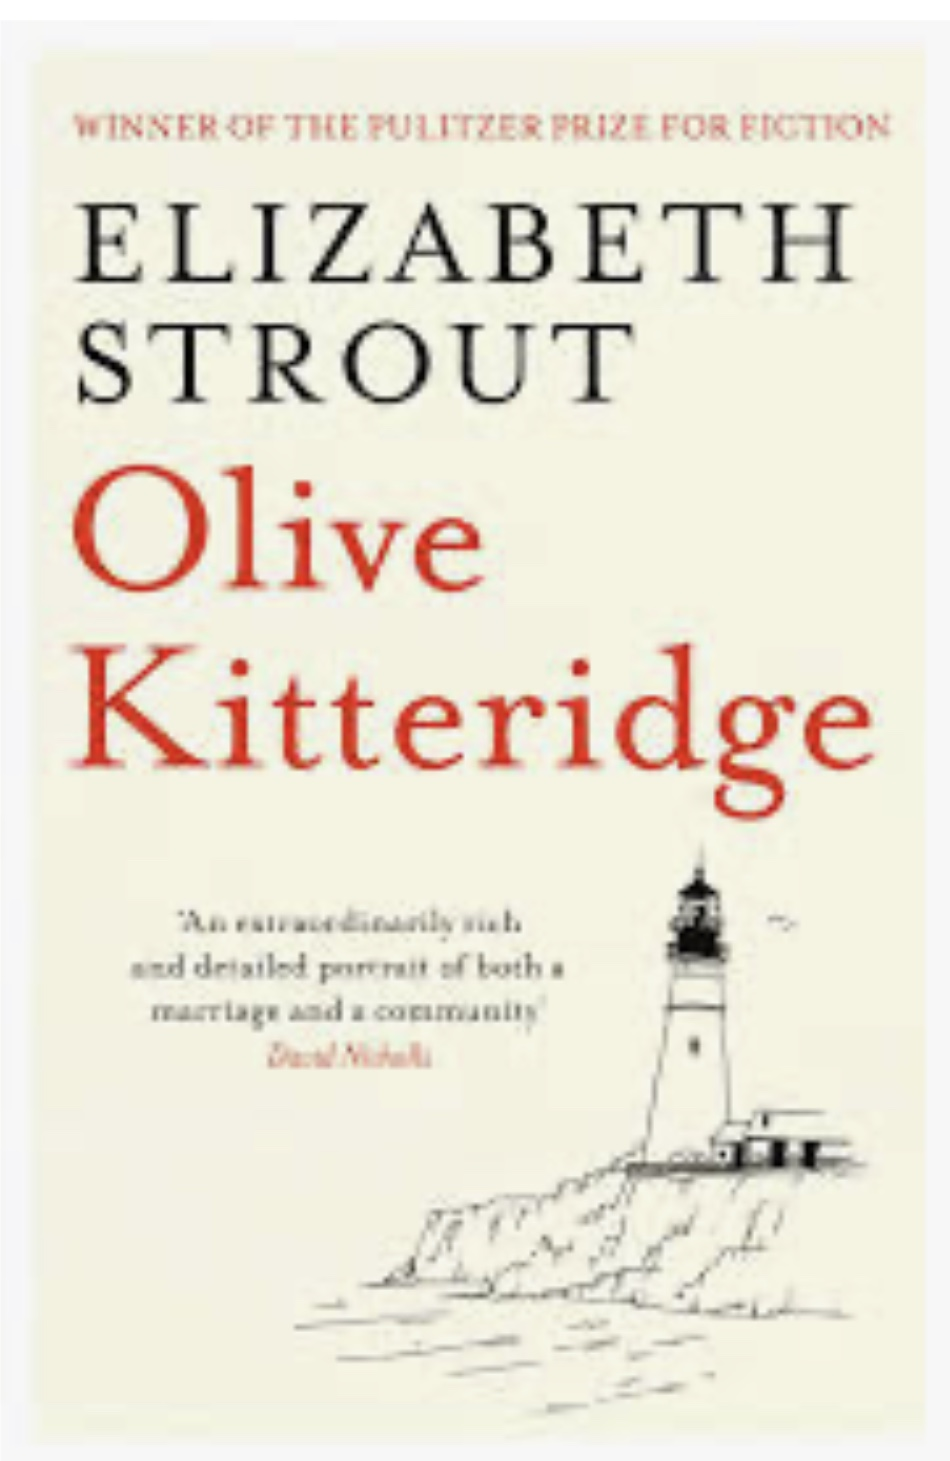 Olive Kitteridge, Olive Again, My Name is Lucy Barton by Elizabeth Strout